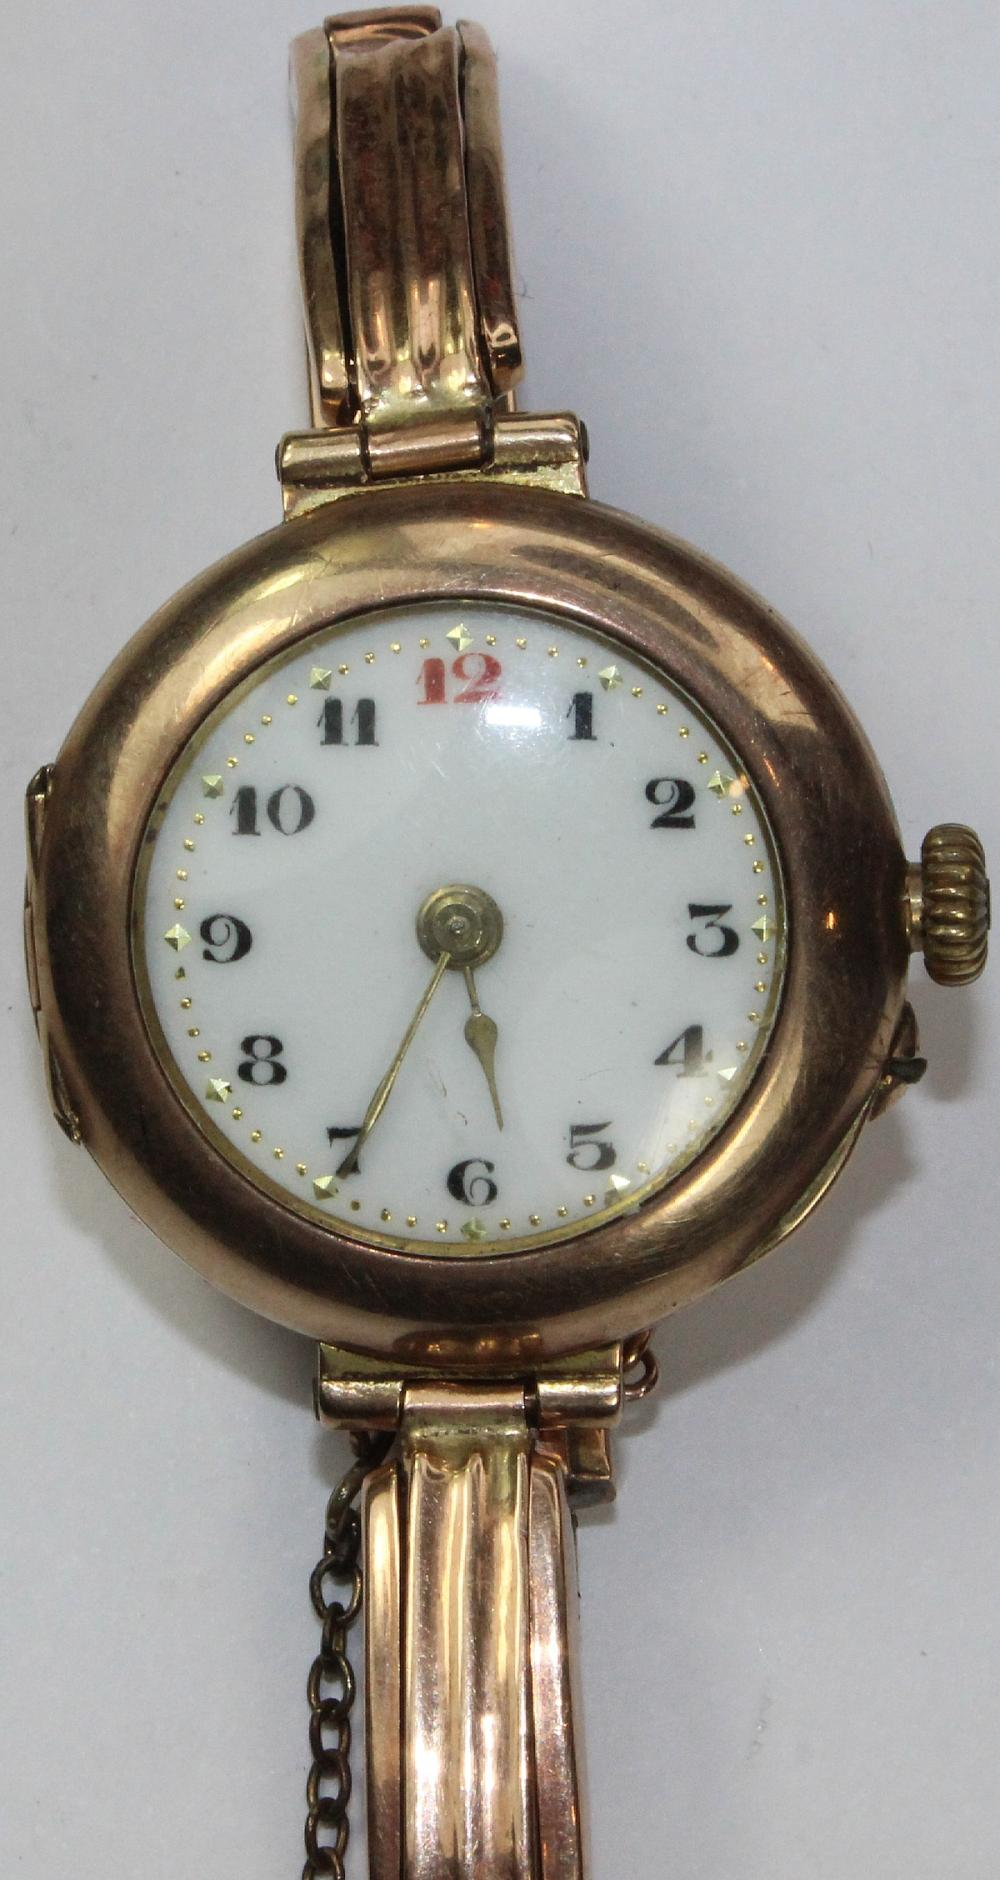 Vintage Woman's Watch in 9ct Gold with Arabic numerals on a simple White Porcelain Dial